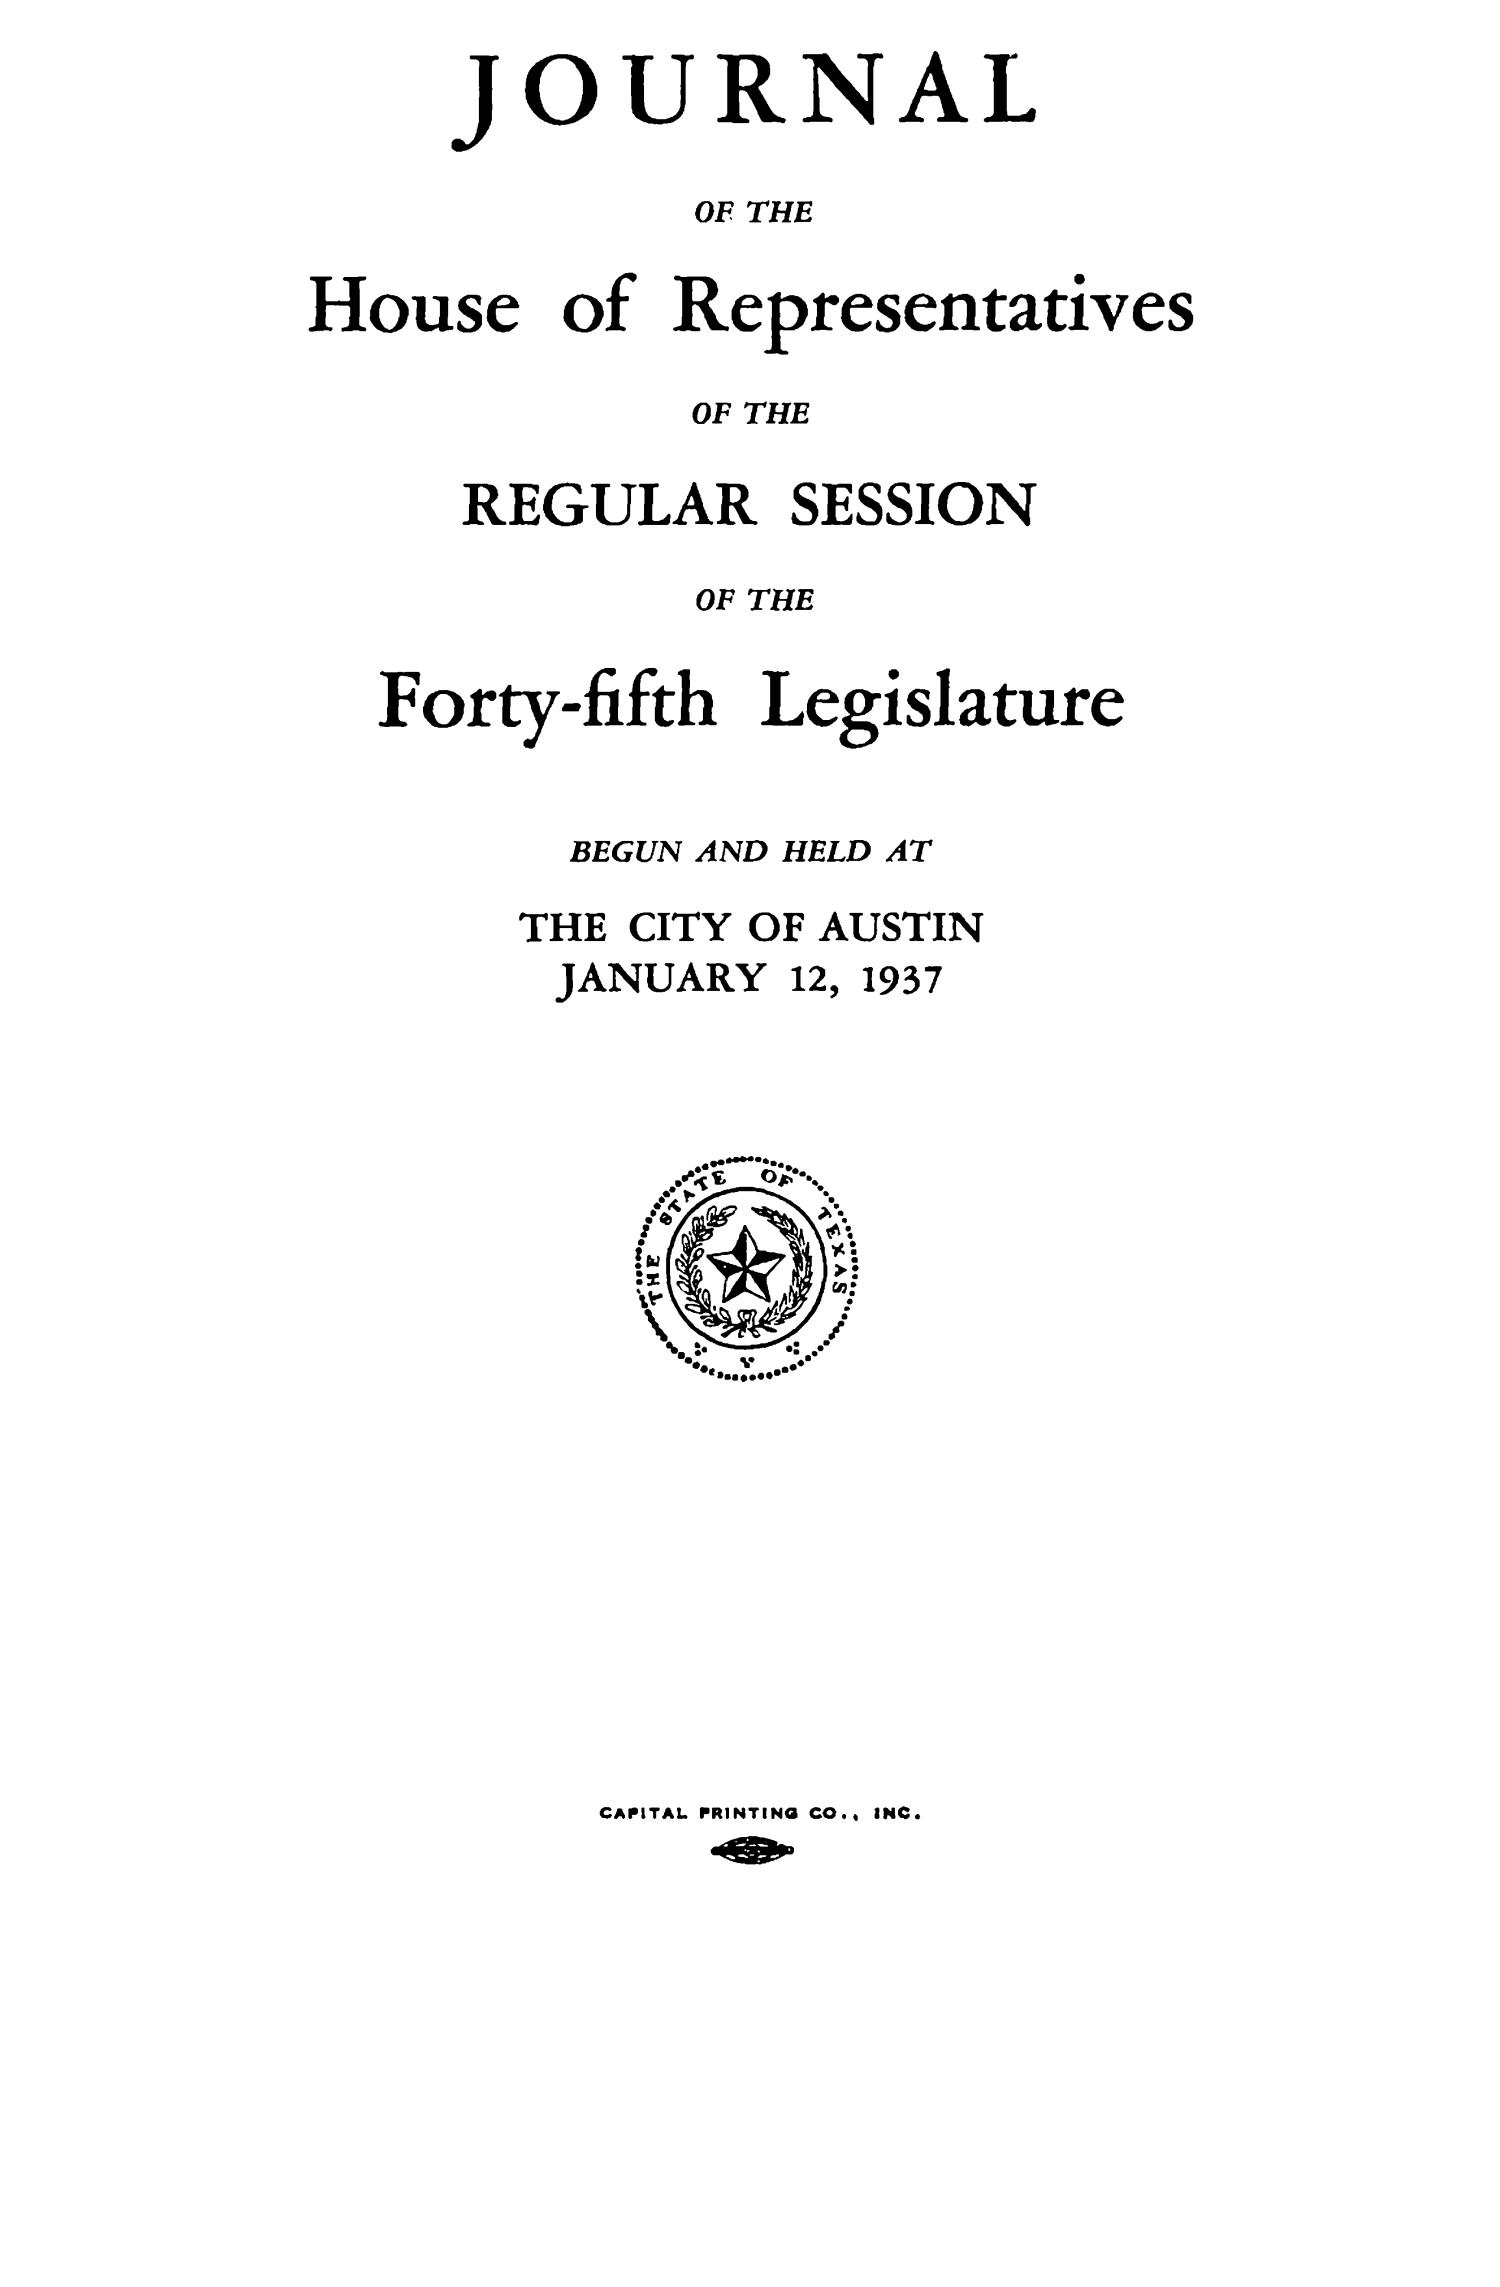 Journal of the House of Representatives of the Regular Session of the Forty-Fifth Legislature of the State of Texas, Volume 1                                                                                                      Title Page